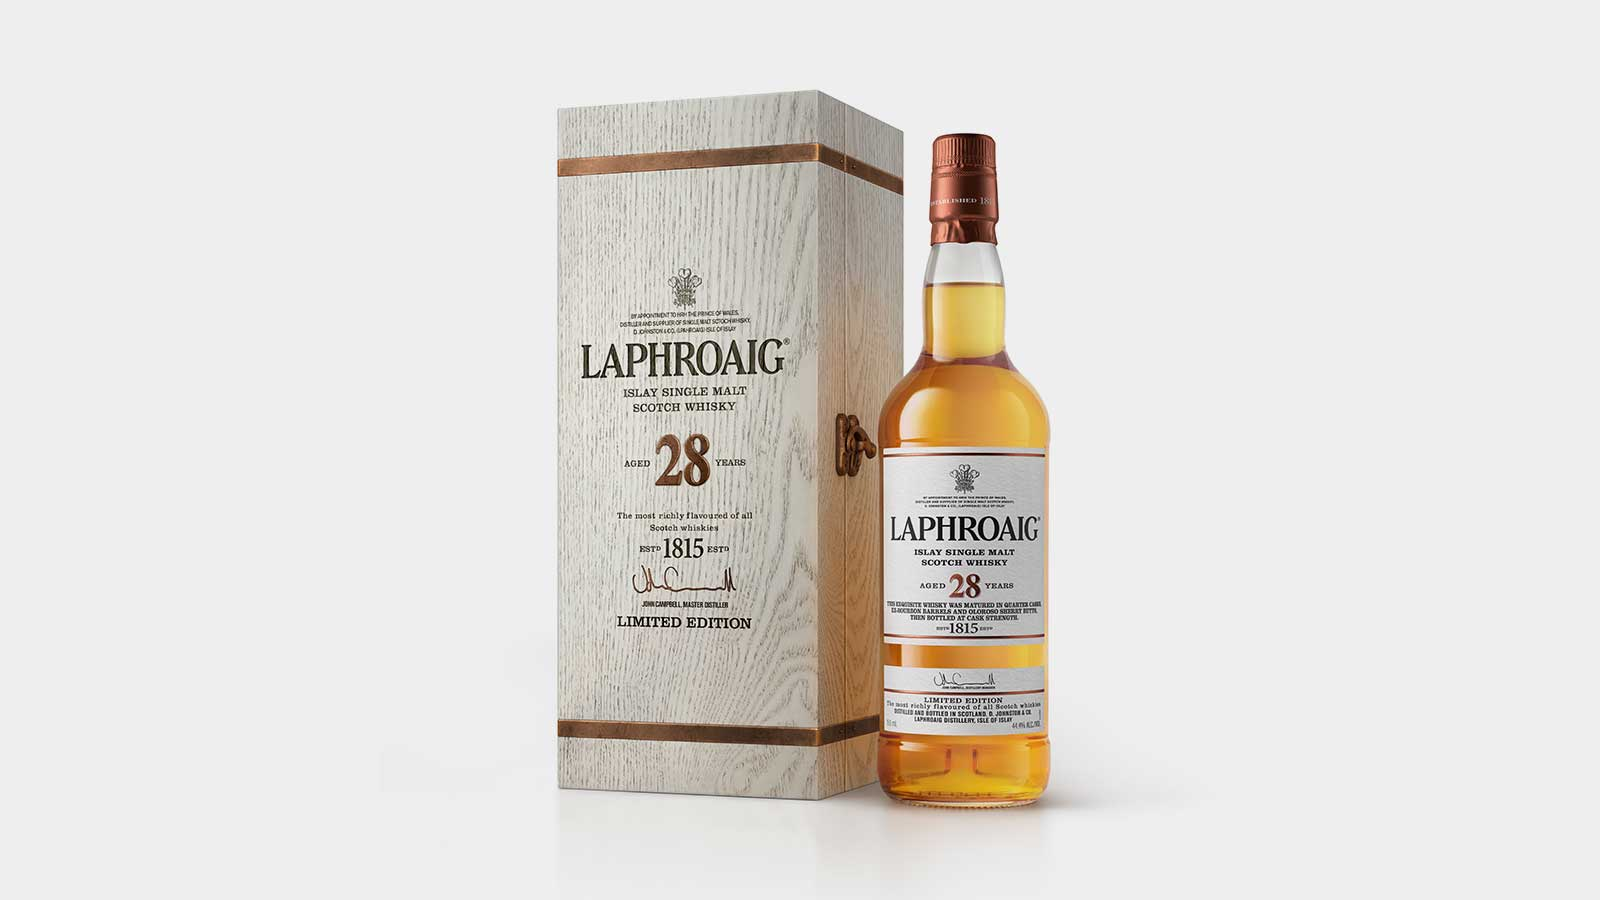 Laphroaig's 28 Year Old Scotch Well Worth The High Price